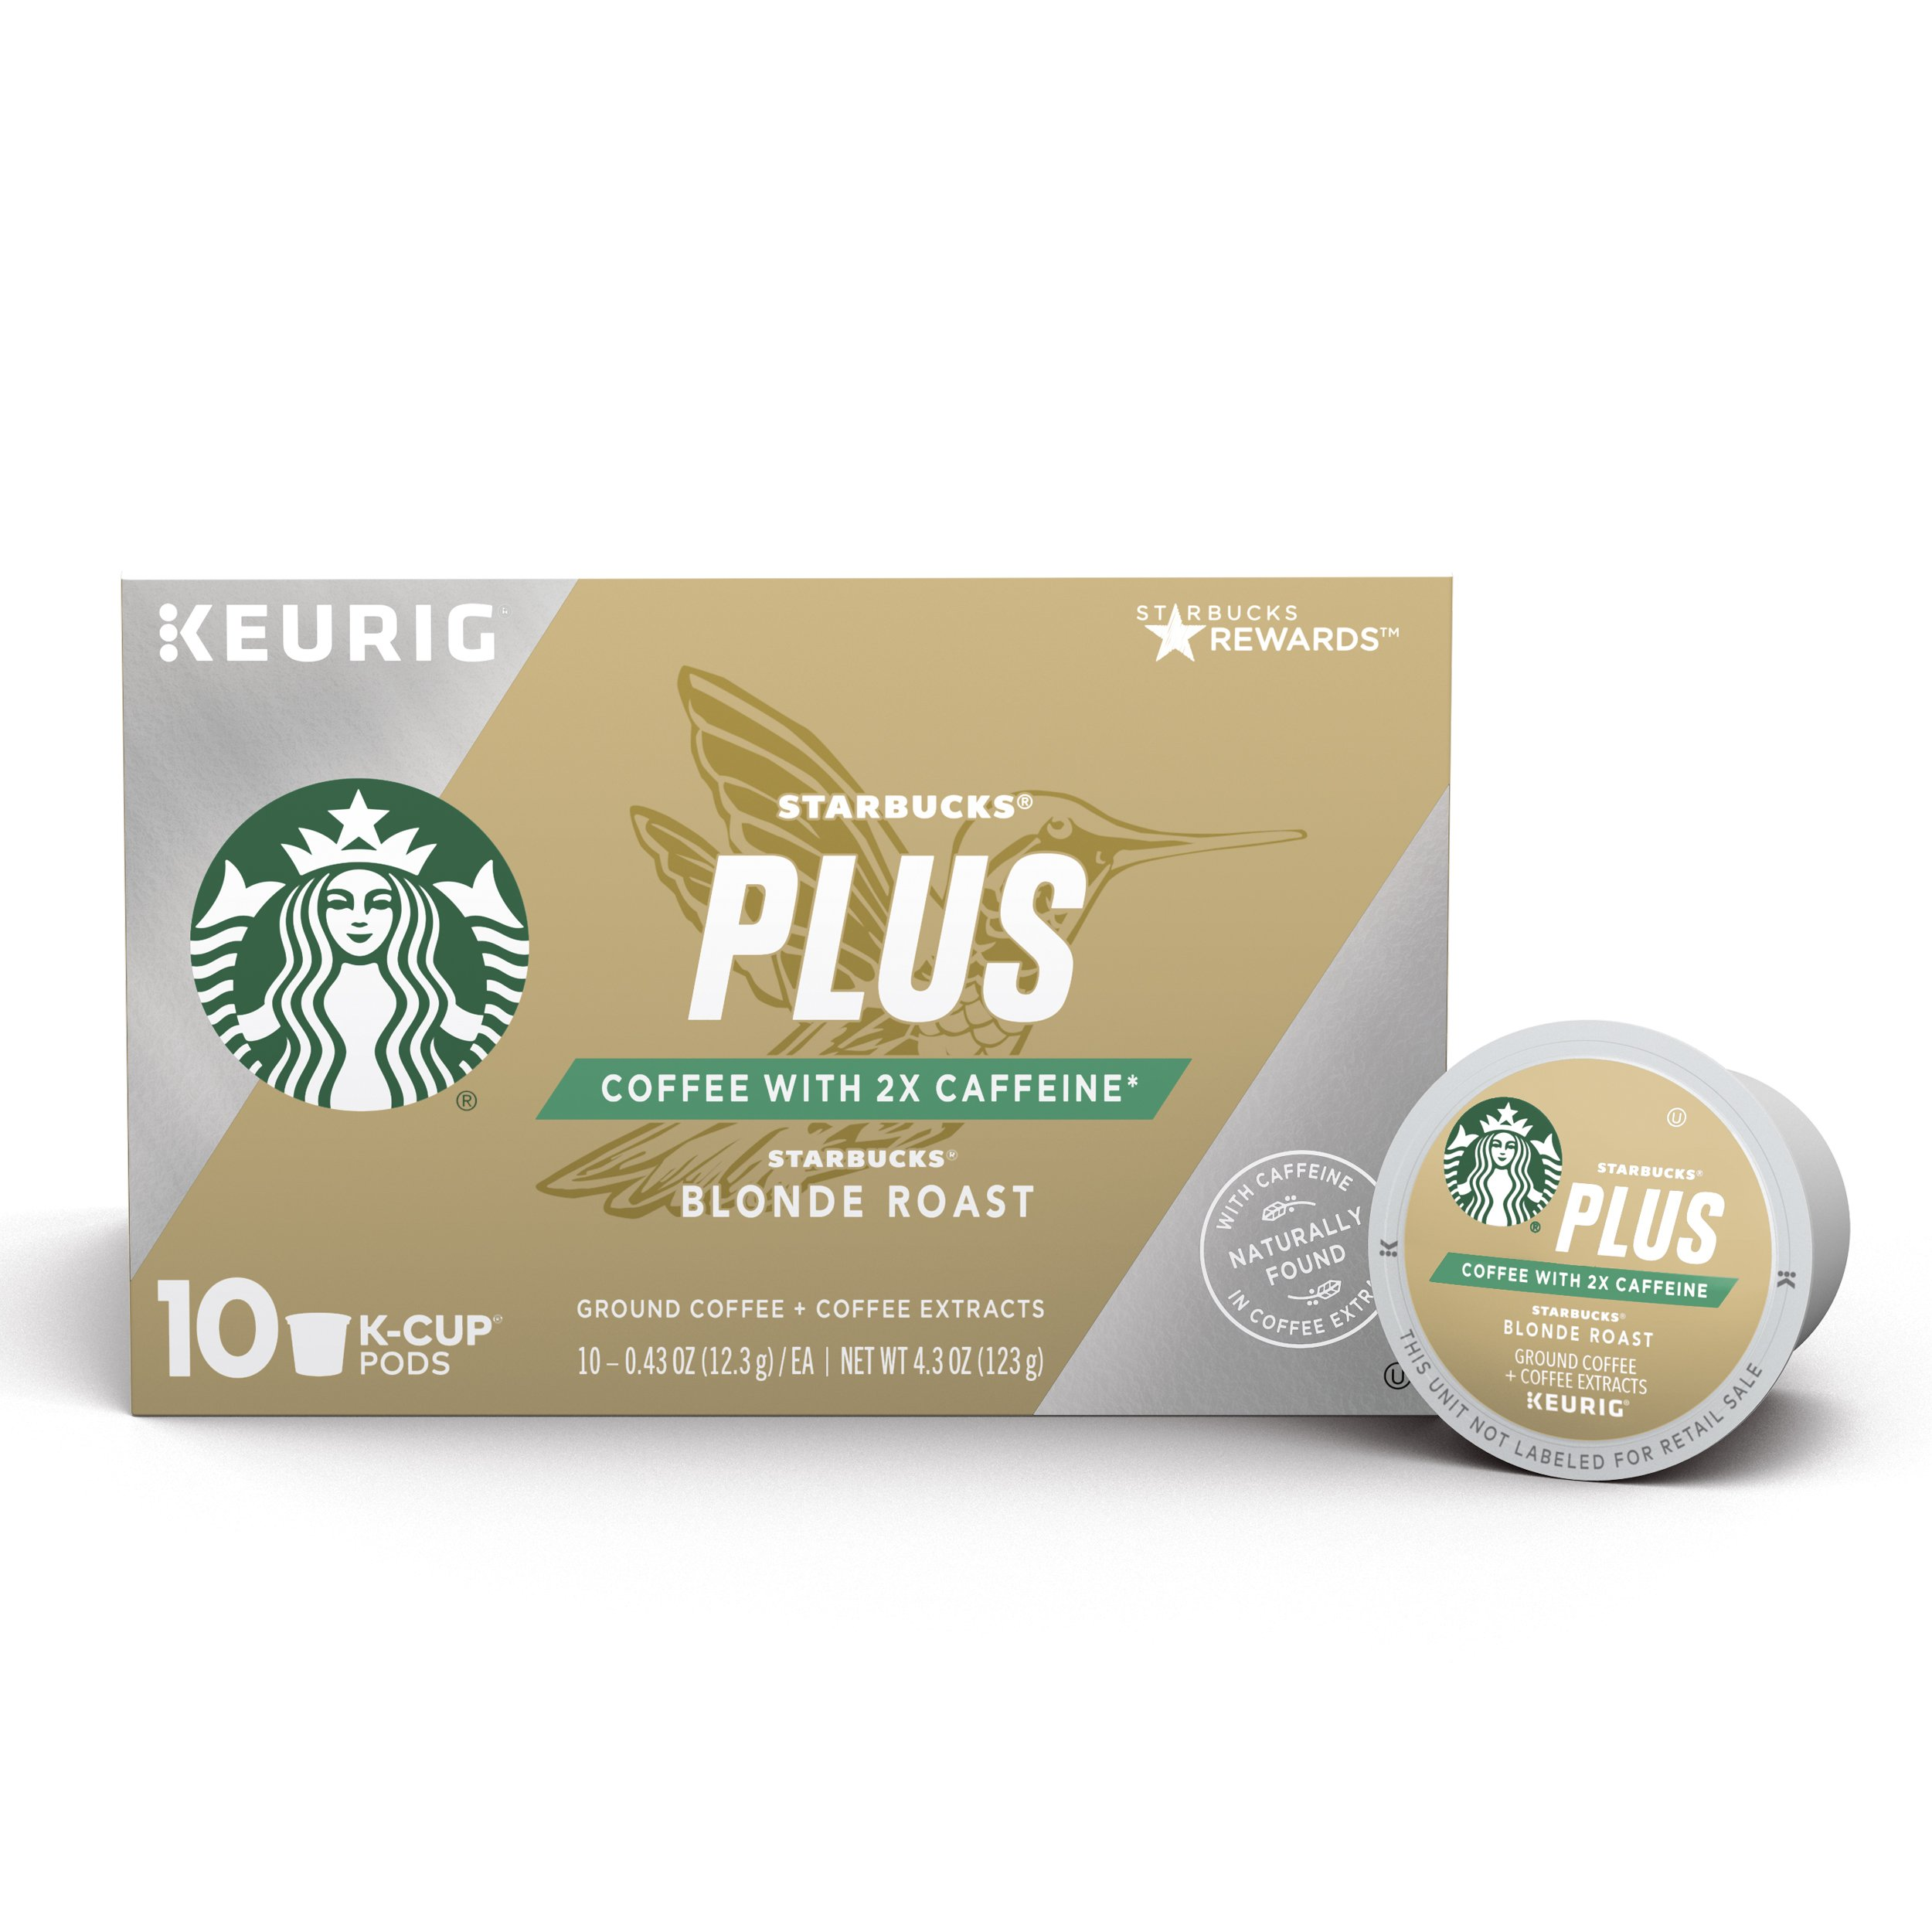 Starbucks Plus Coffee Blonde Roast 2X Caffeine Single Cup Coffee for Keurig Brewers, 6 Boxes of 10 (60 Total K-Cup Pods)